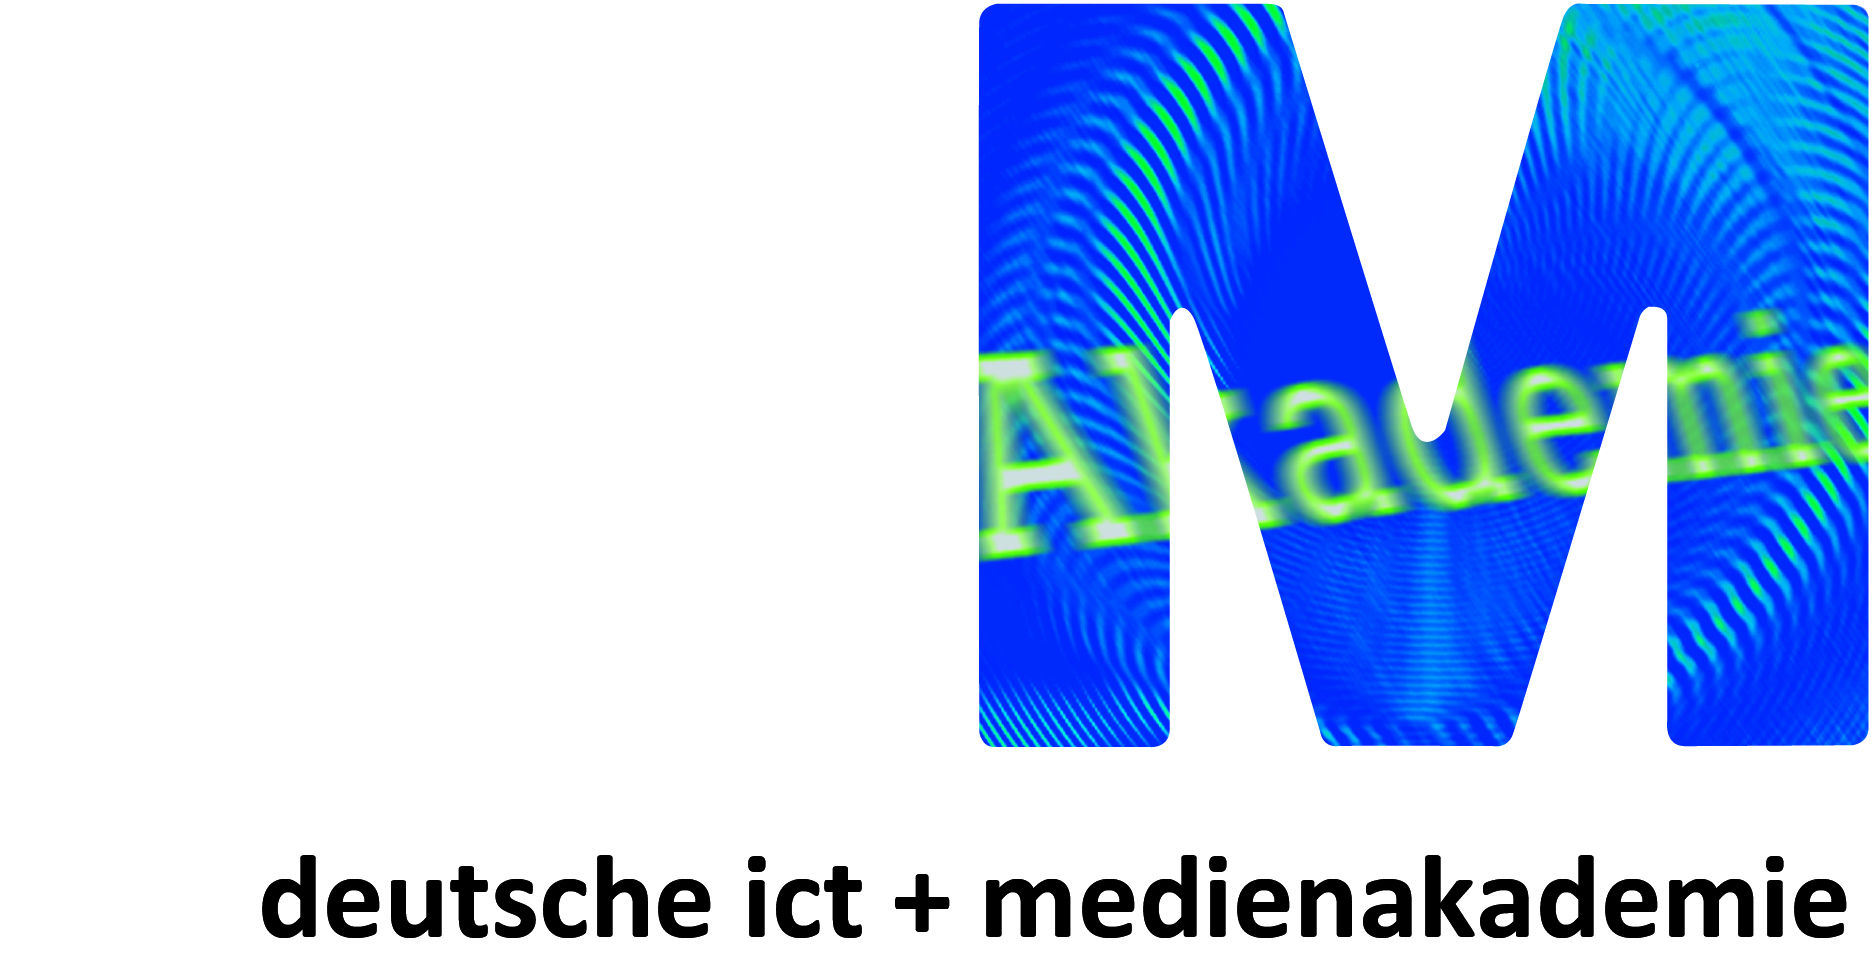 deutsche ict + medienakademie